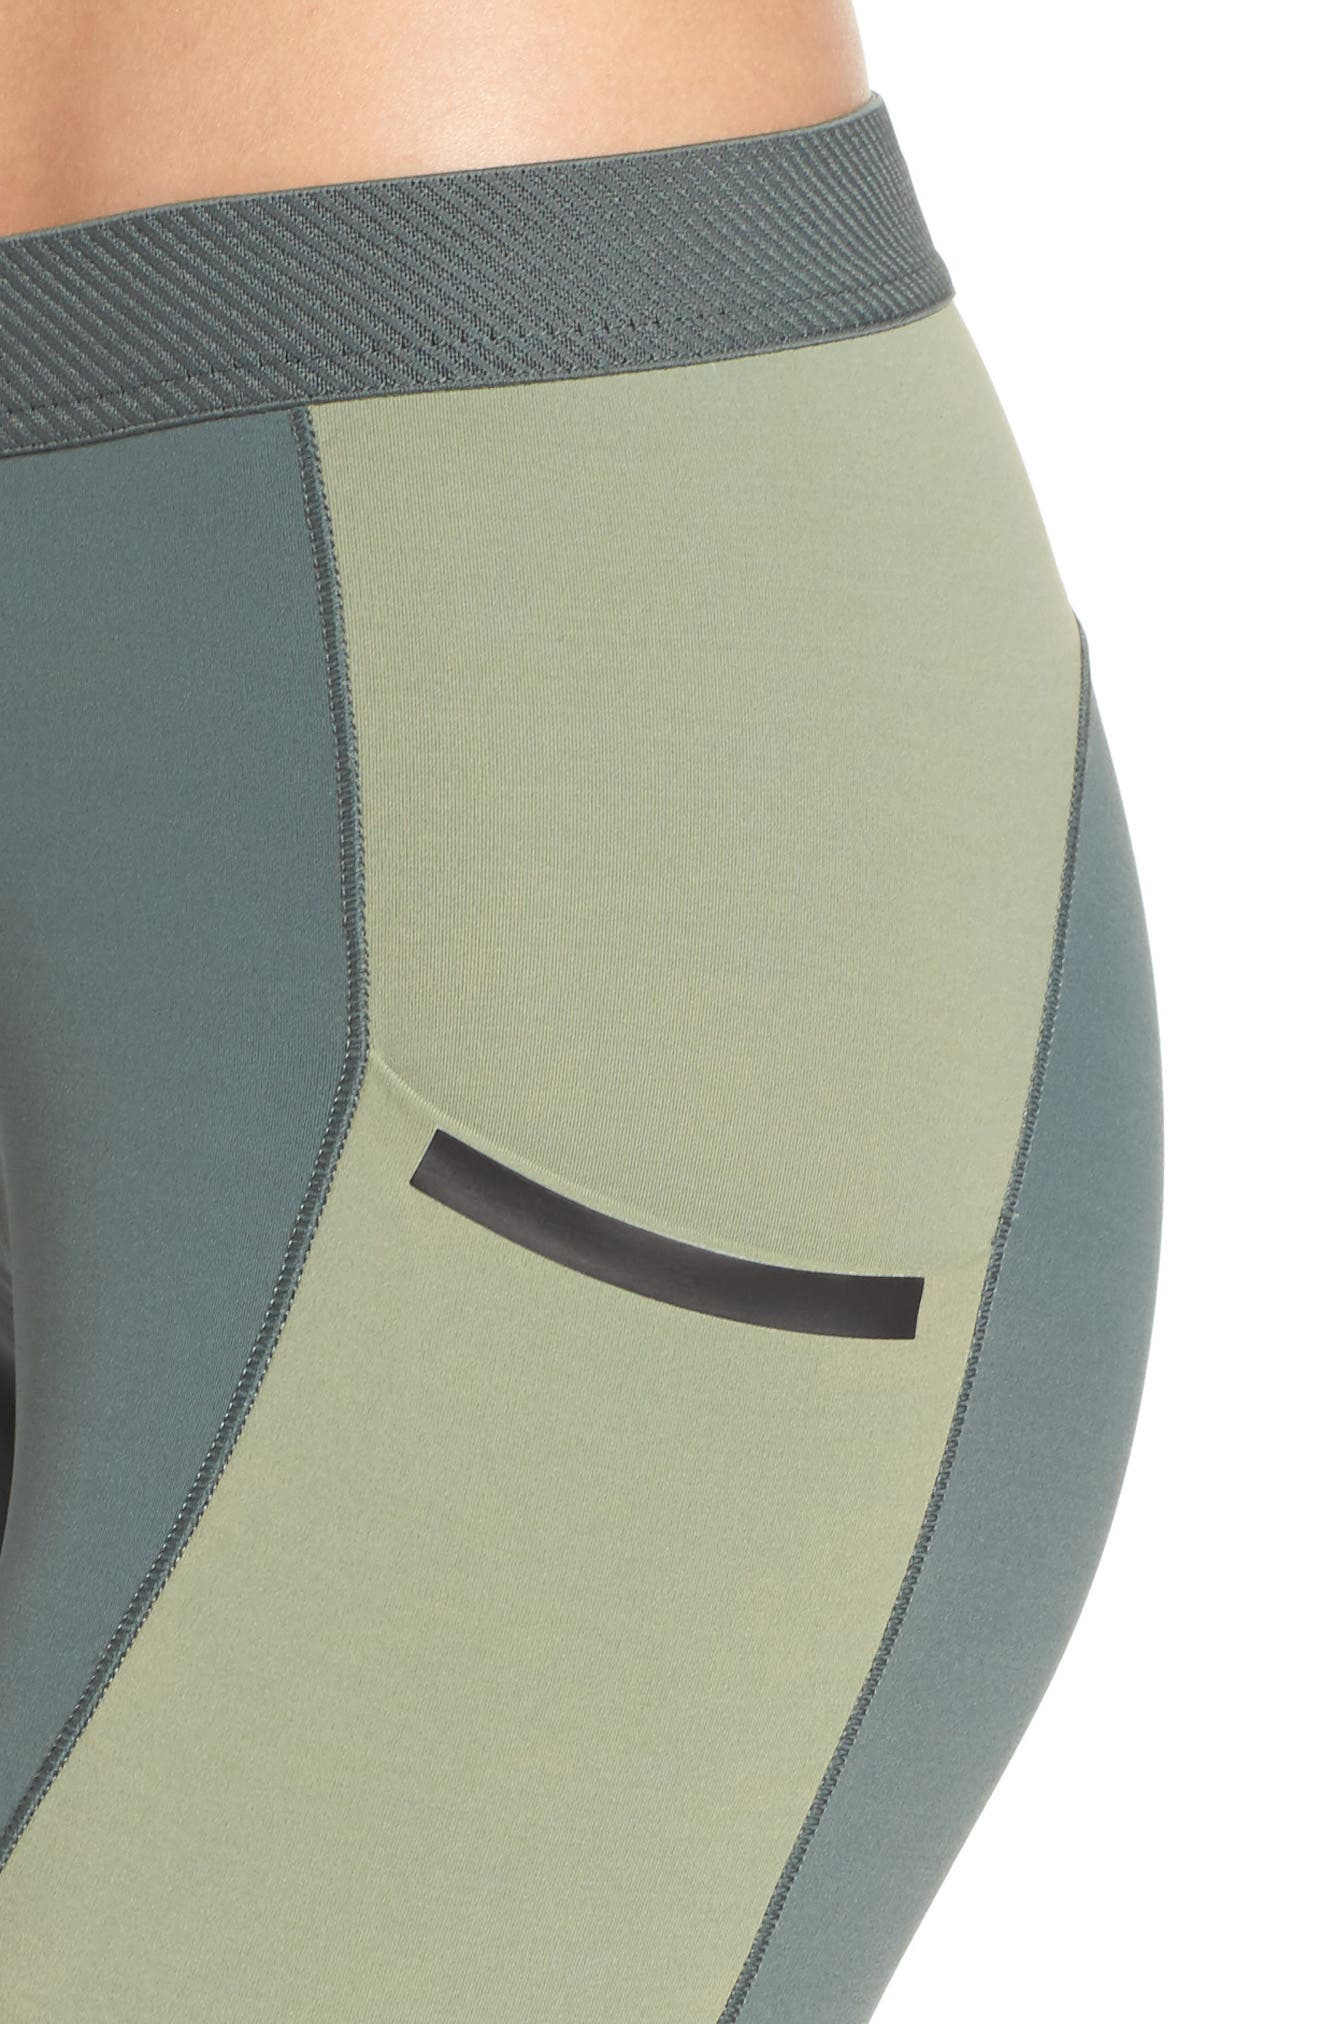 Climachill<sup>®</sup> Training Tights,                             Alternate thumbnail 4, color,                             Utility Ivy F16/ Green